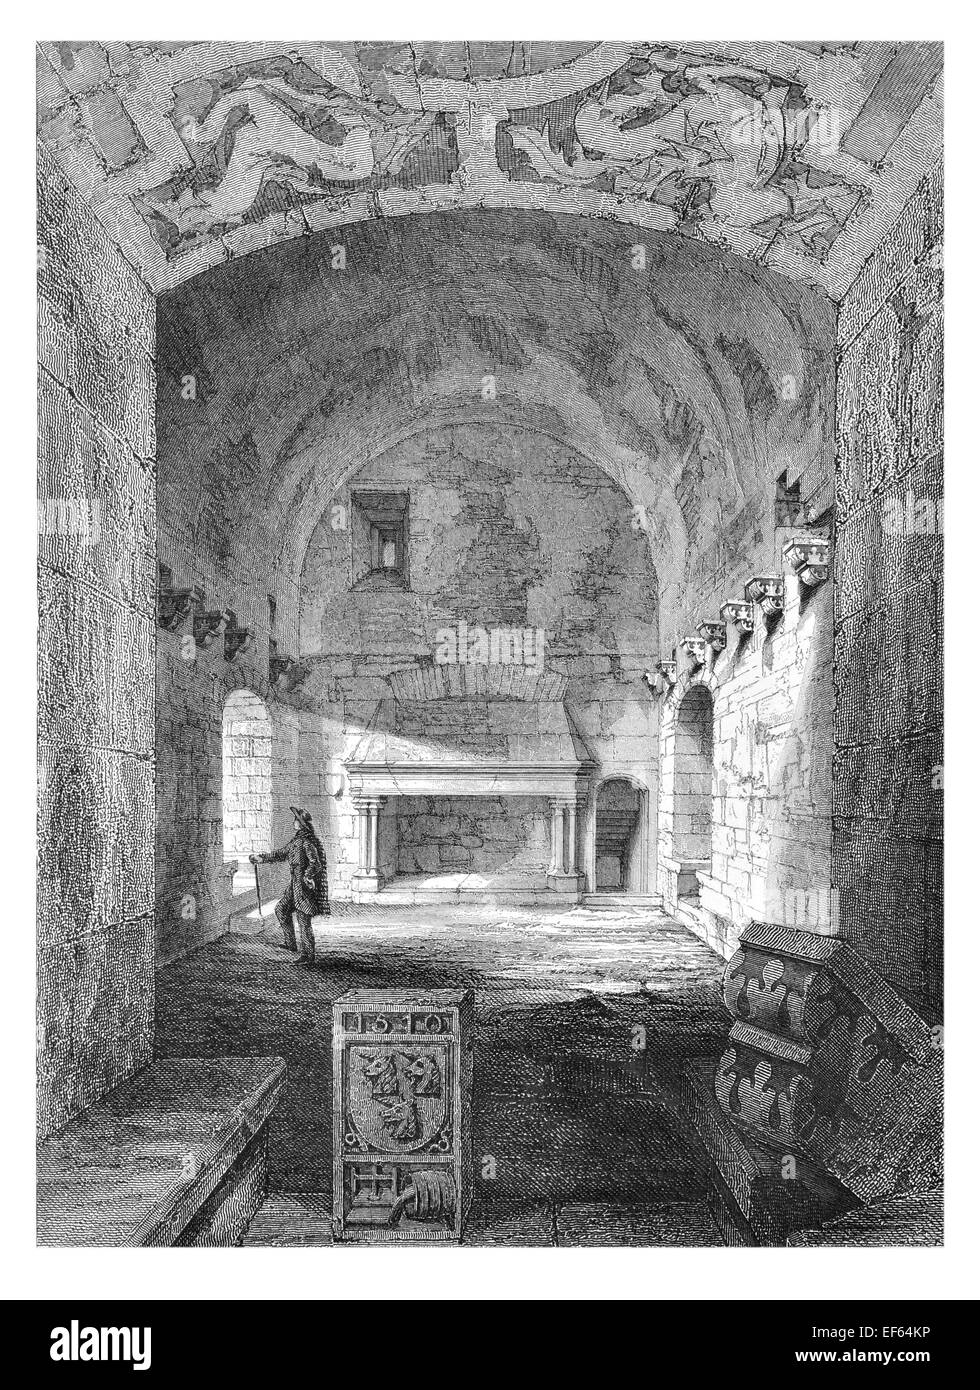 1852 Interior Keep Tower Craigmillar Castle  ruined medieval castle Edinburgh Stock Photo